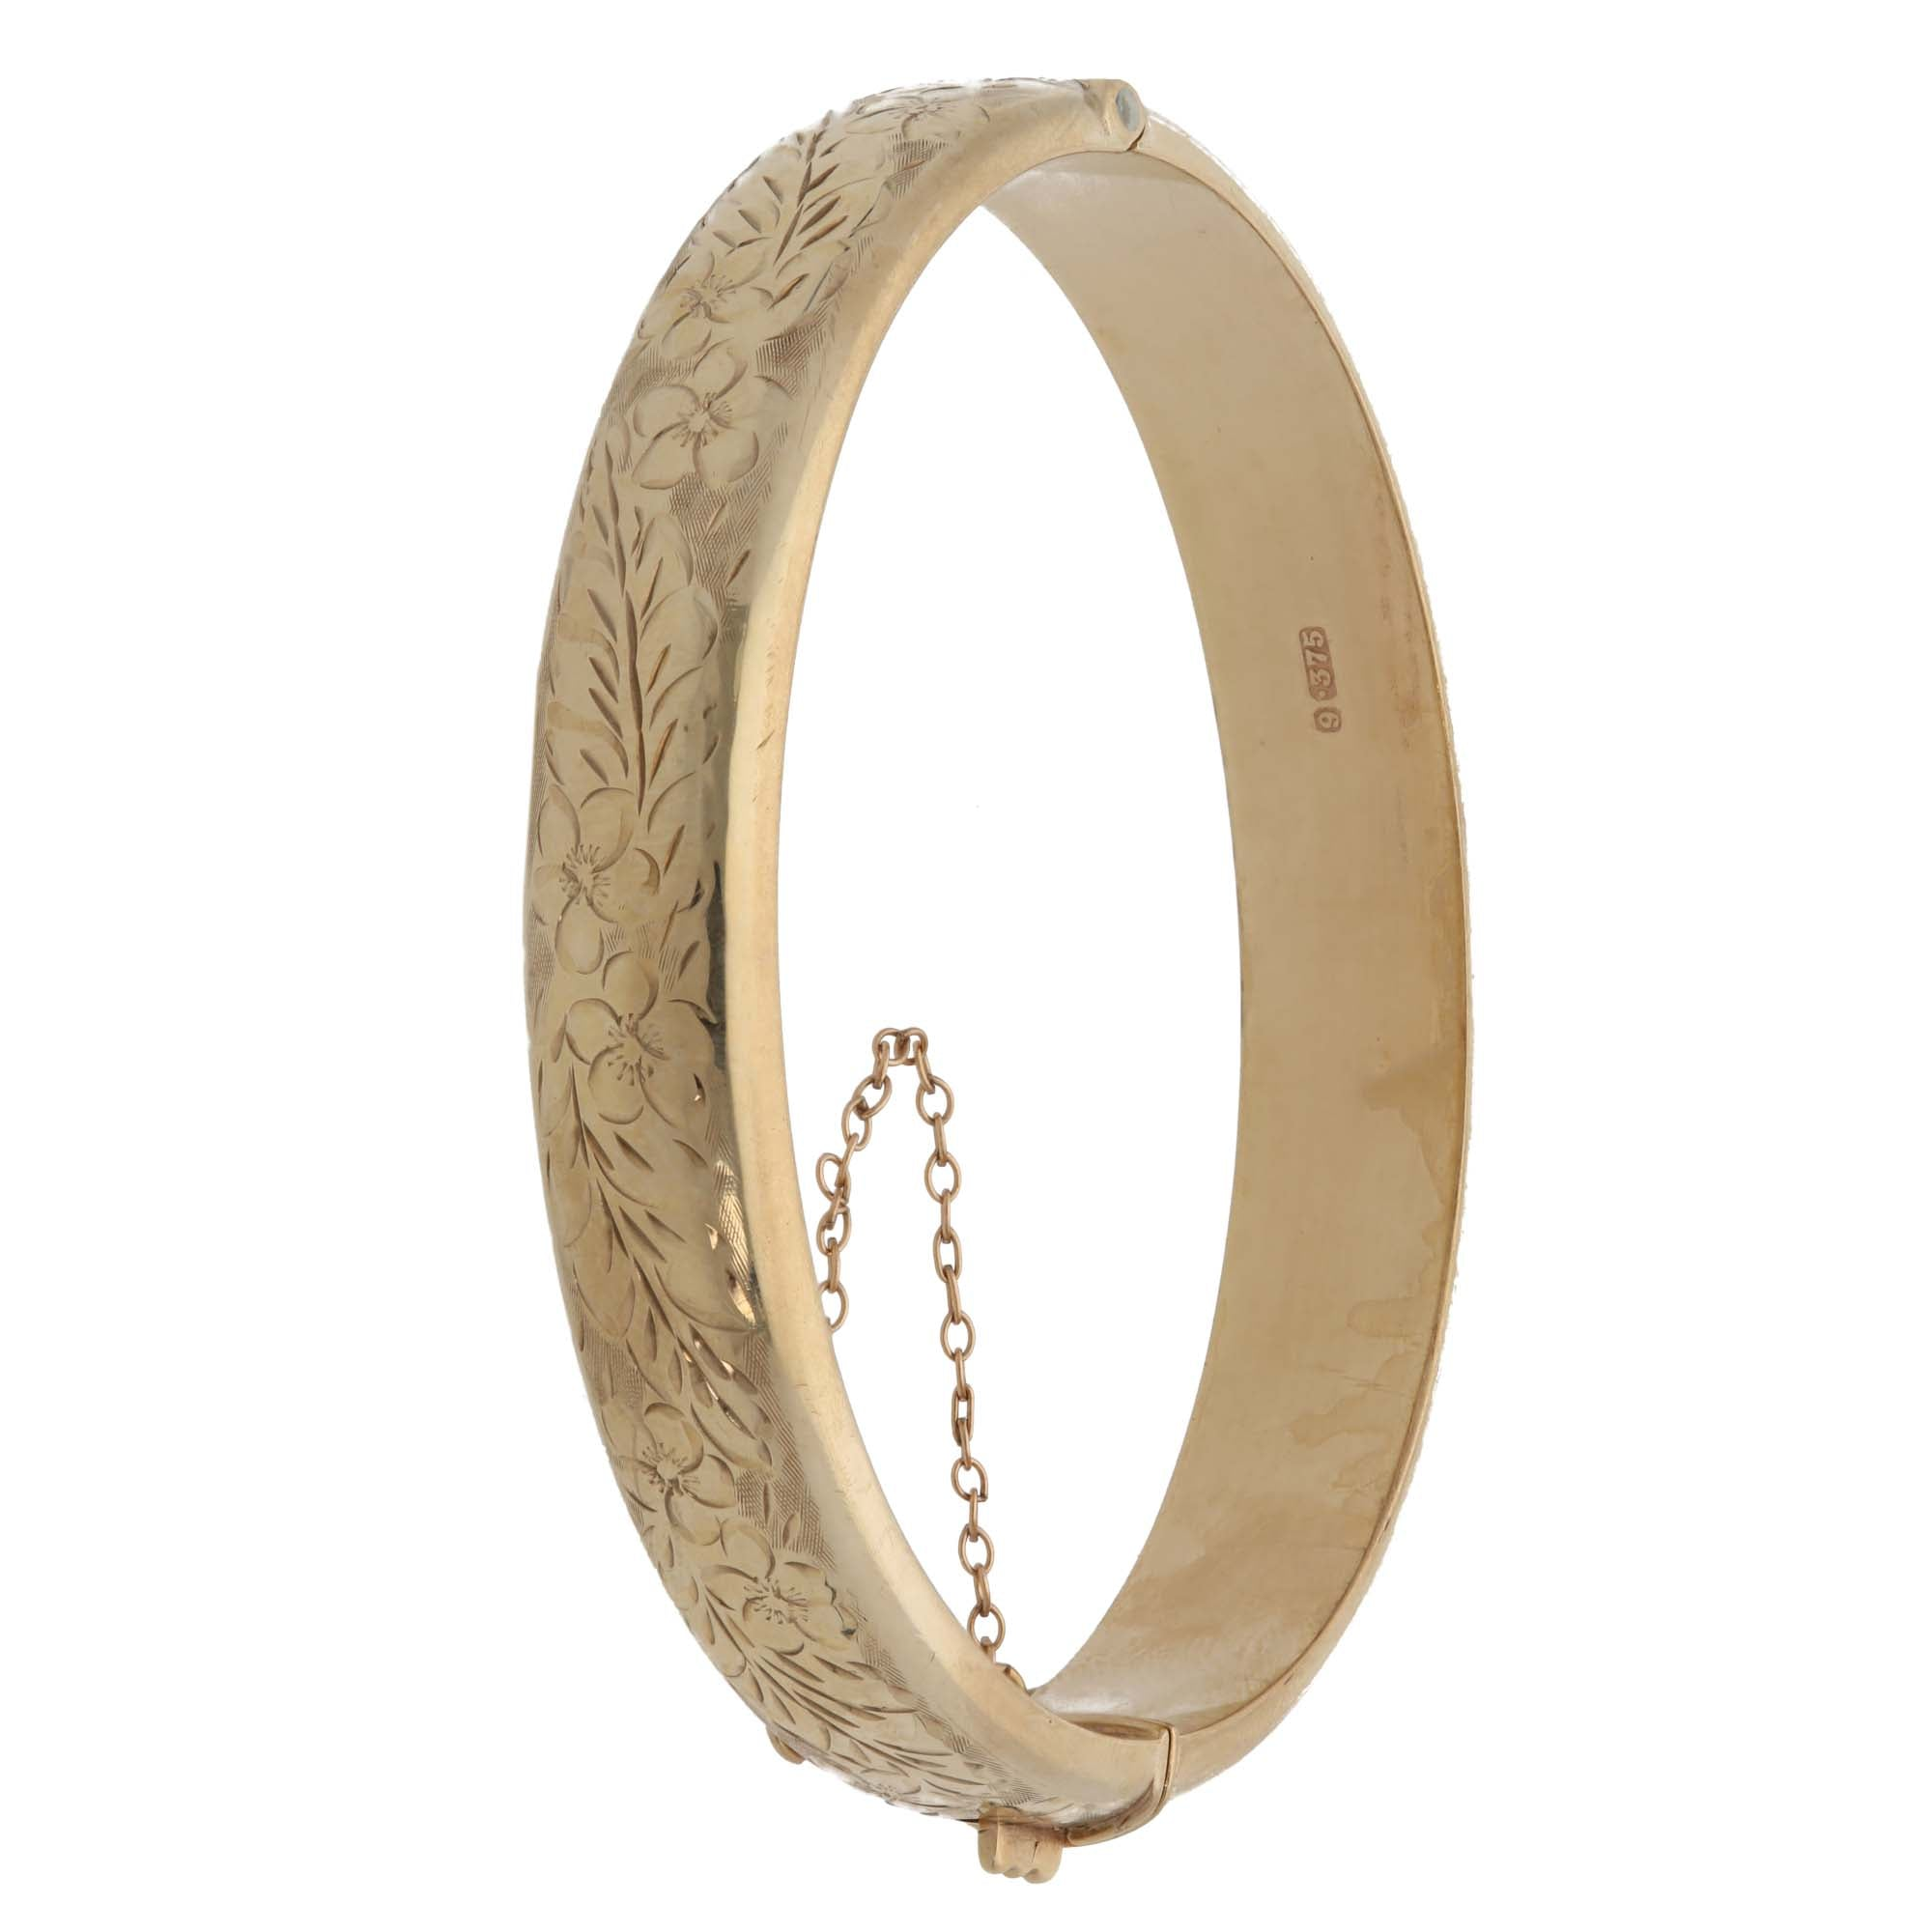 9ct Gold Ladies Hinged Clasp Bangle